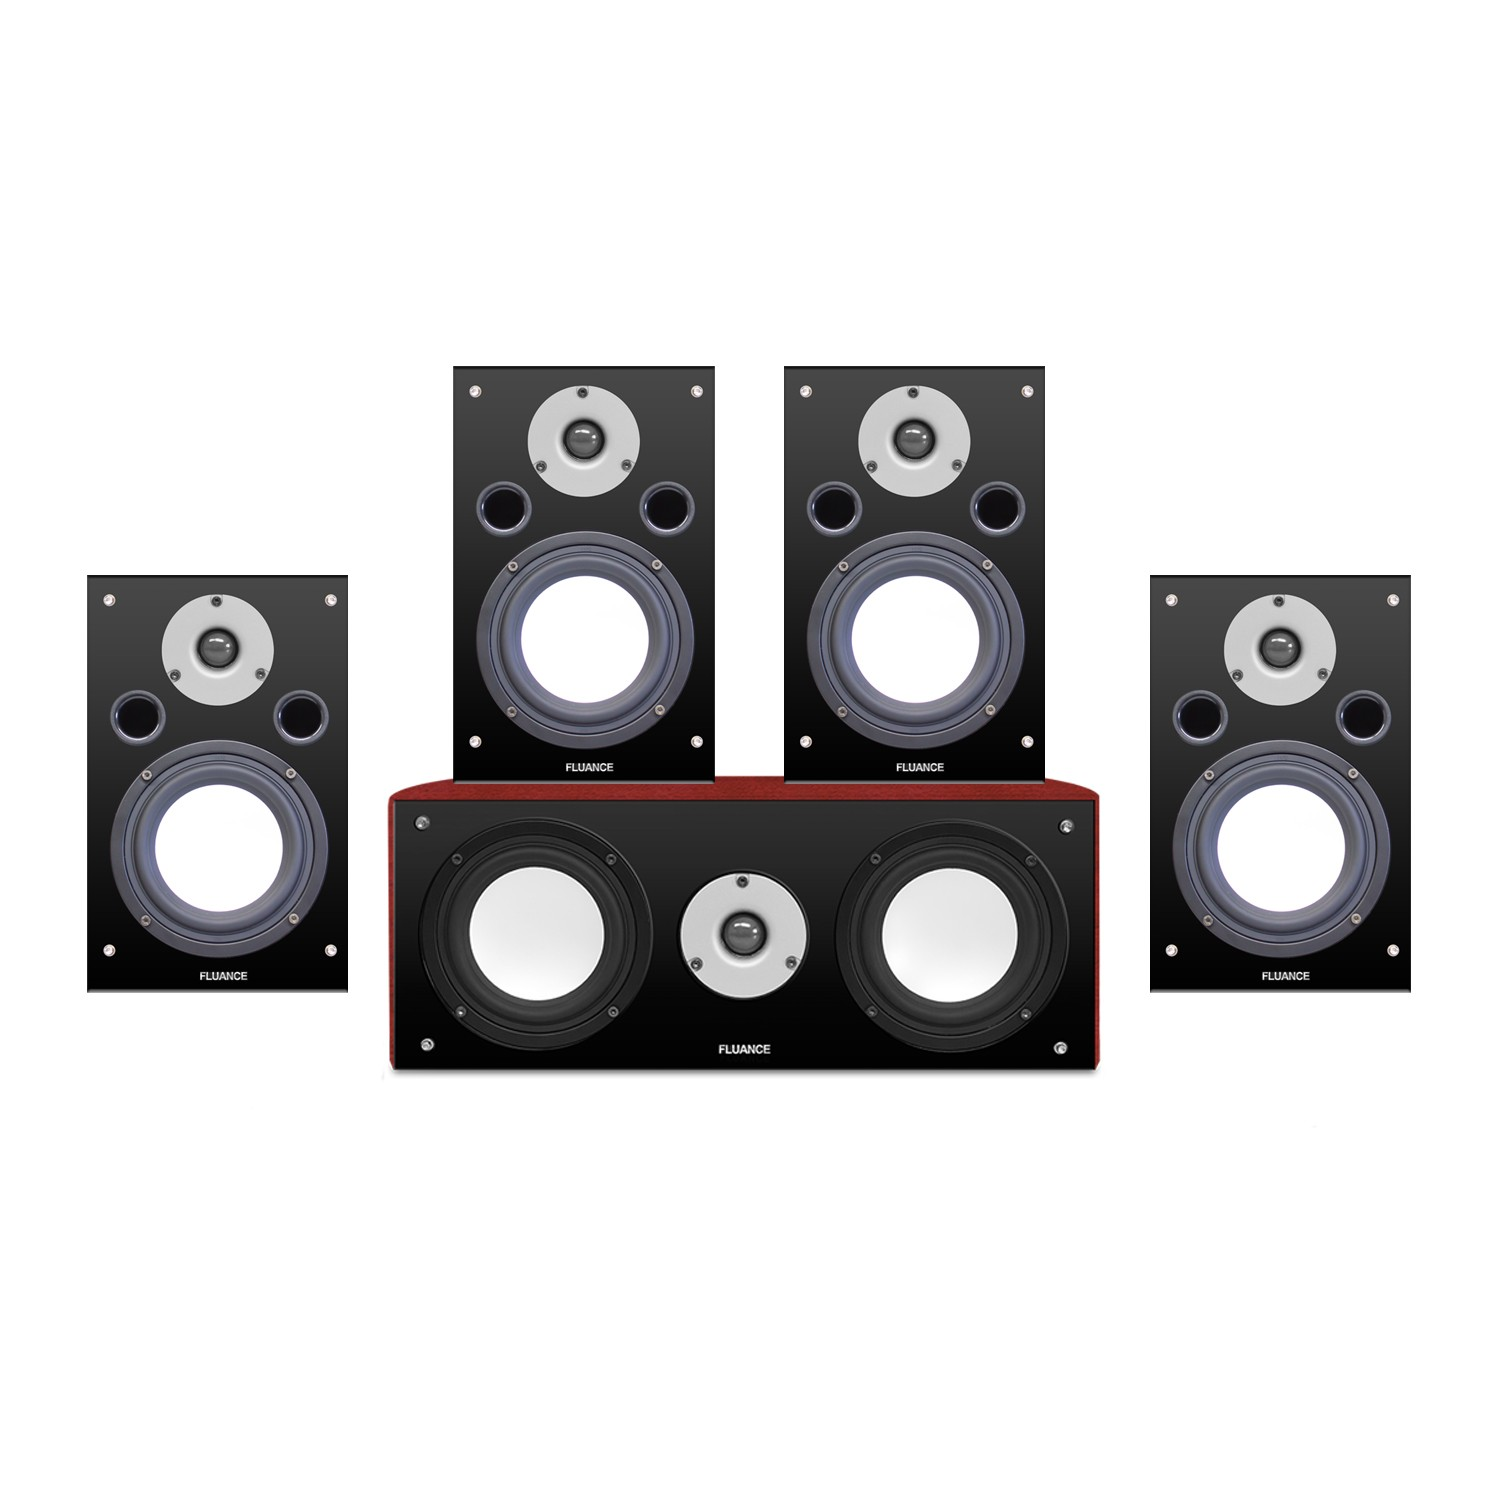 XL7C-XL7S-2PACK home theater speaker system main